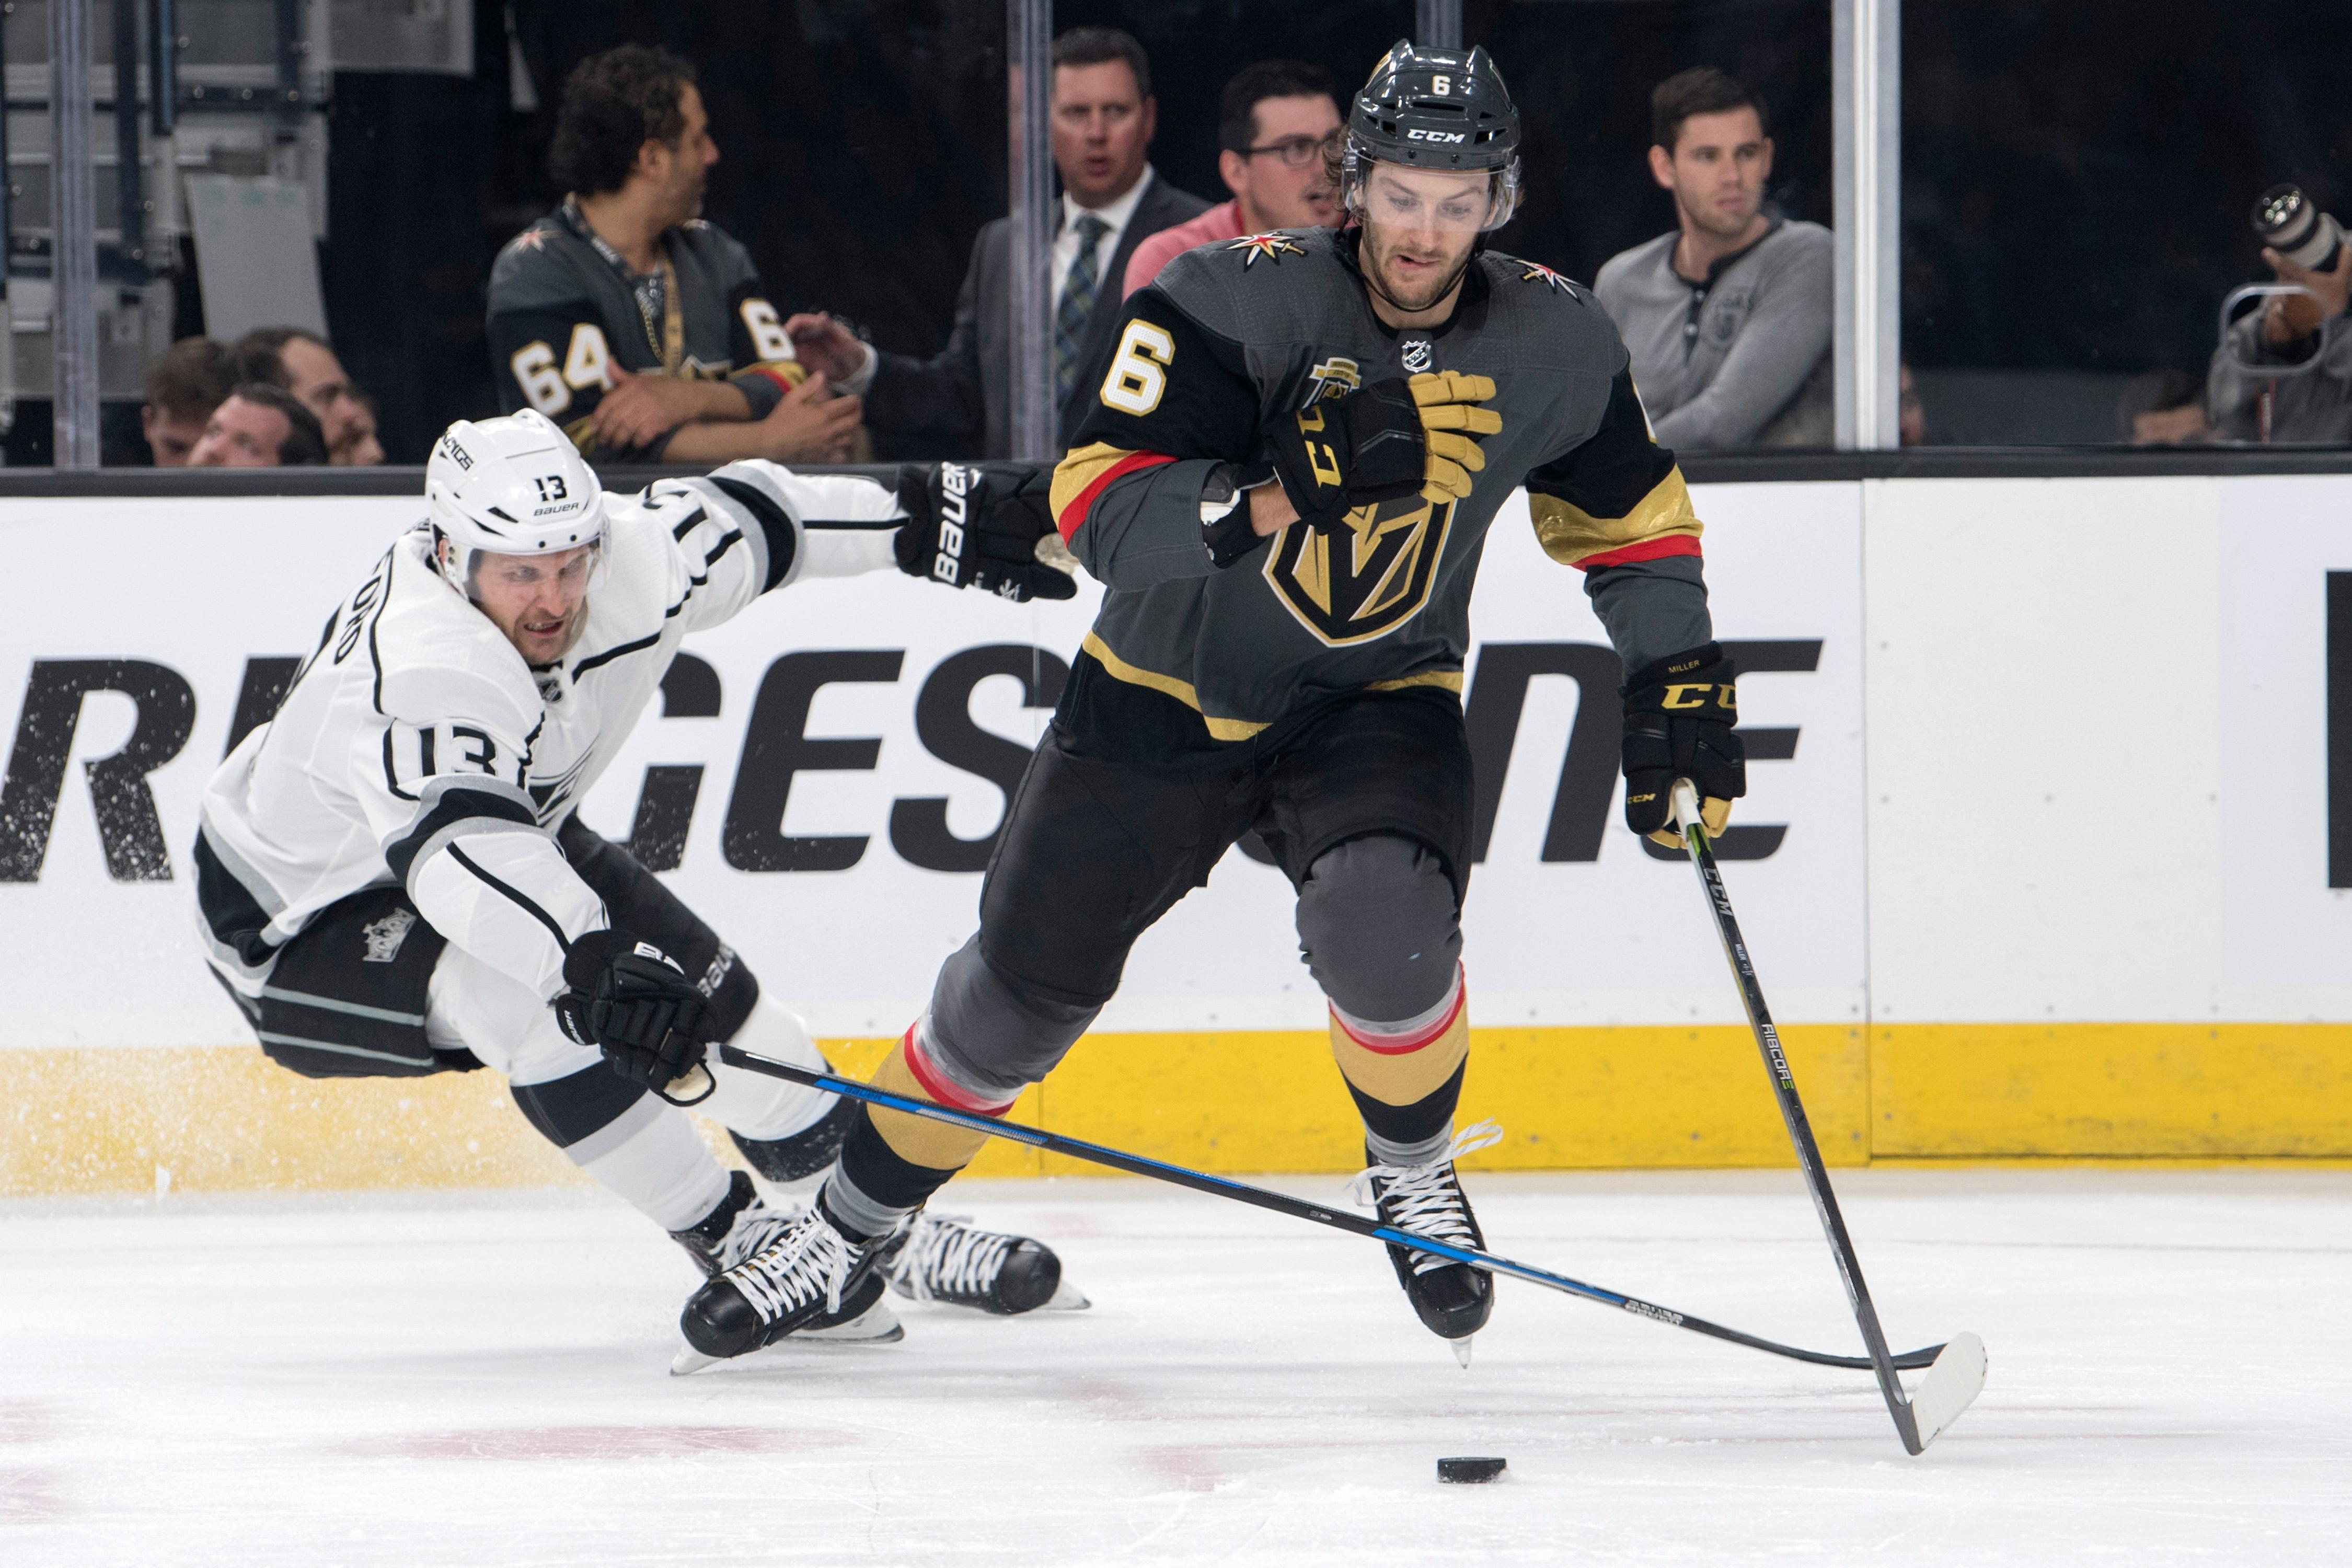 Los Angeles Kings left wing Kyle Clifford (13) and Vegas Golden Knights defenseman Colin Miller (6) chase a down the puck during the first period of Game 1 of their NHL hockey first-round playoff series Wednesday, April 11, 2018 at T-Mobile Arena. The Knights won 1-0. CREDIT: Sam Morris/Las Vegas News Bureau